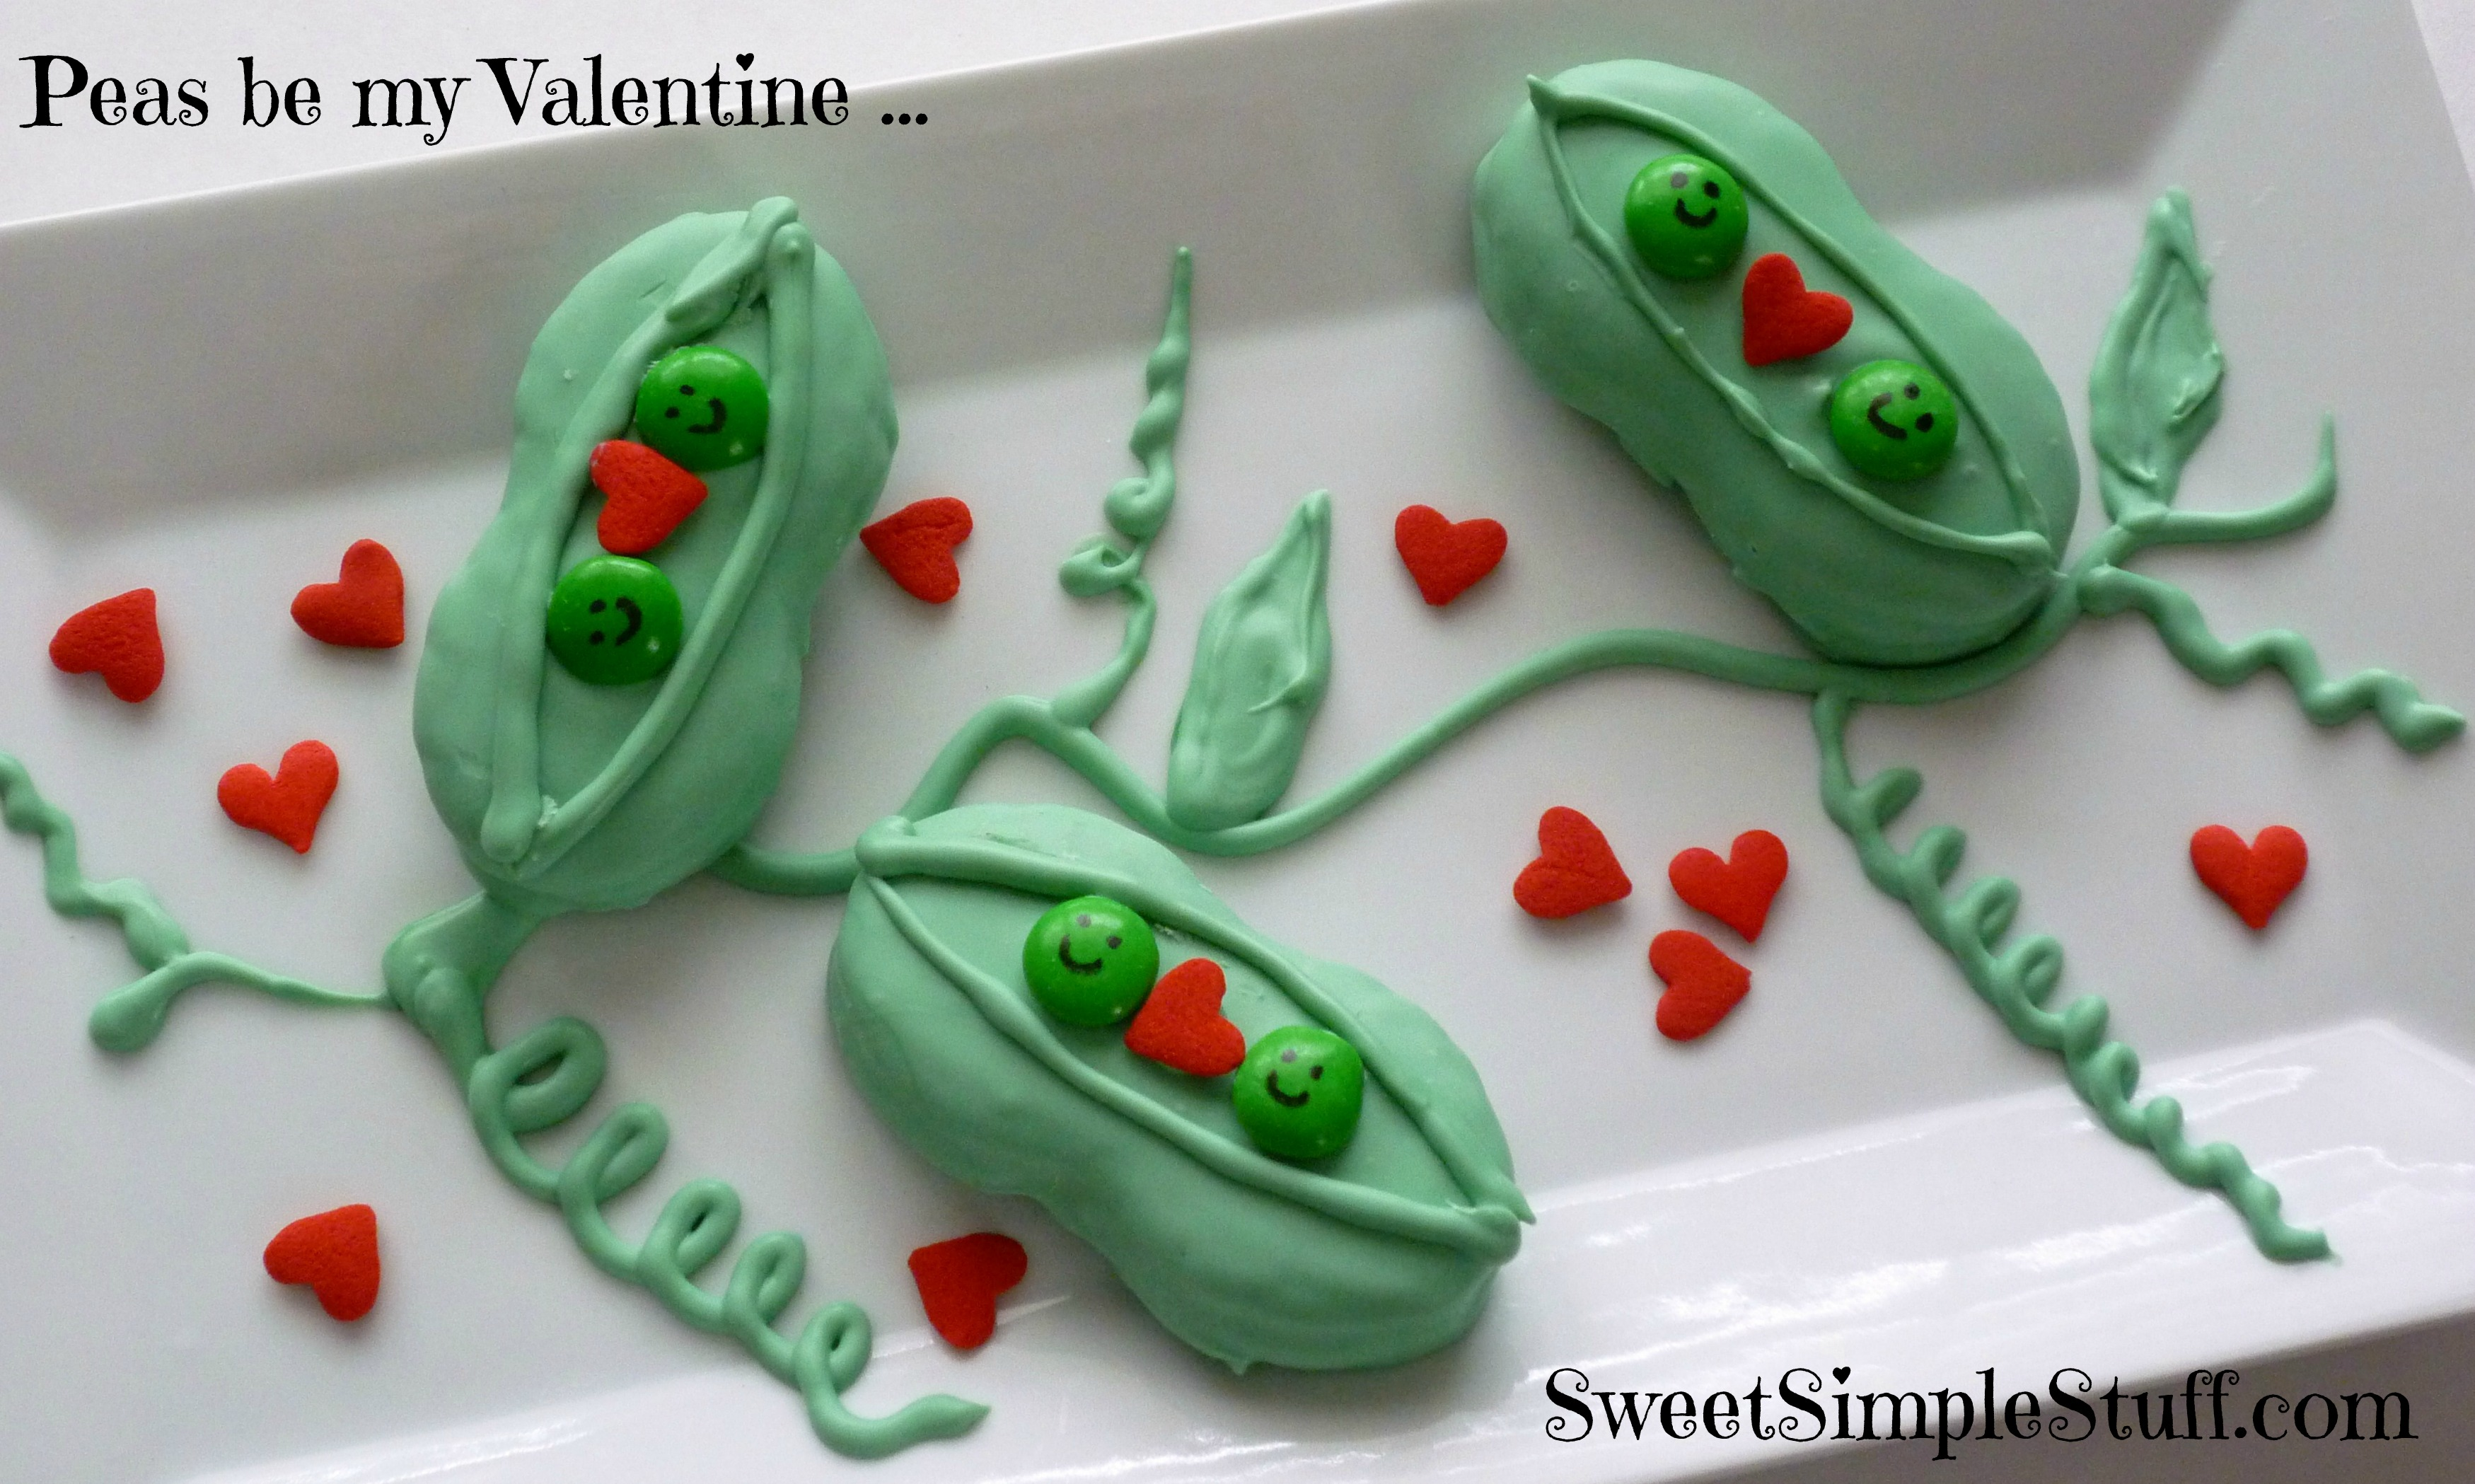 Nutter butter peas in a pod edible crafts for Peas in a pod craft